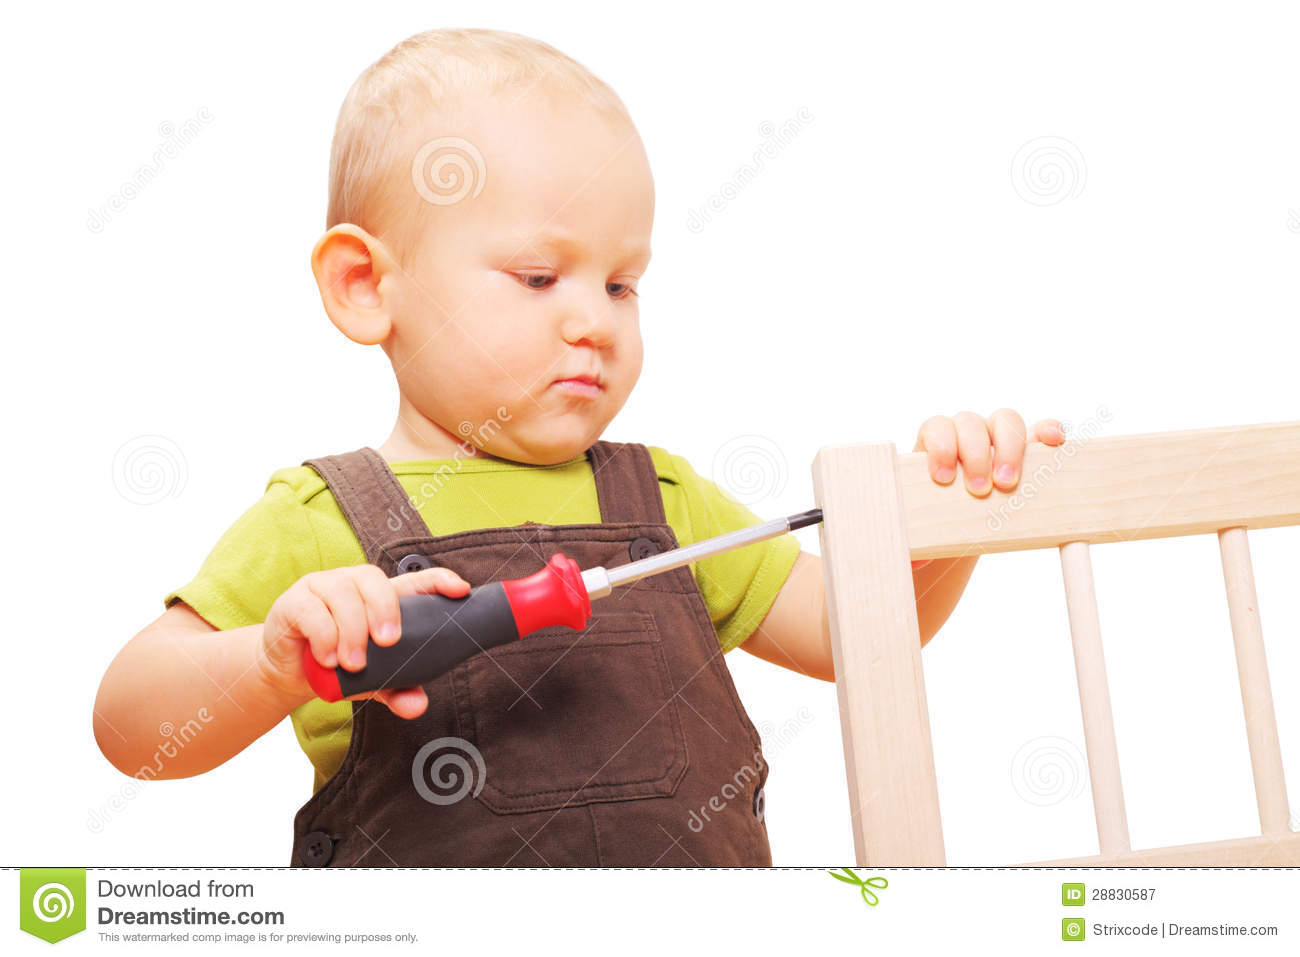 little boy chairs tj maxx chair image of fixing with screwdriver royalty